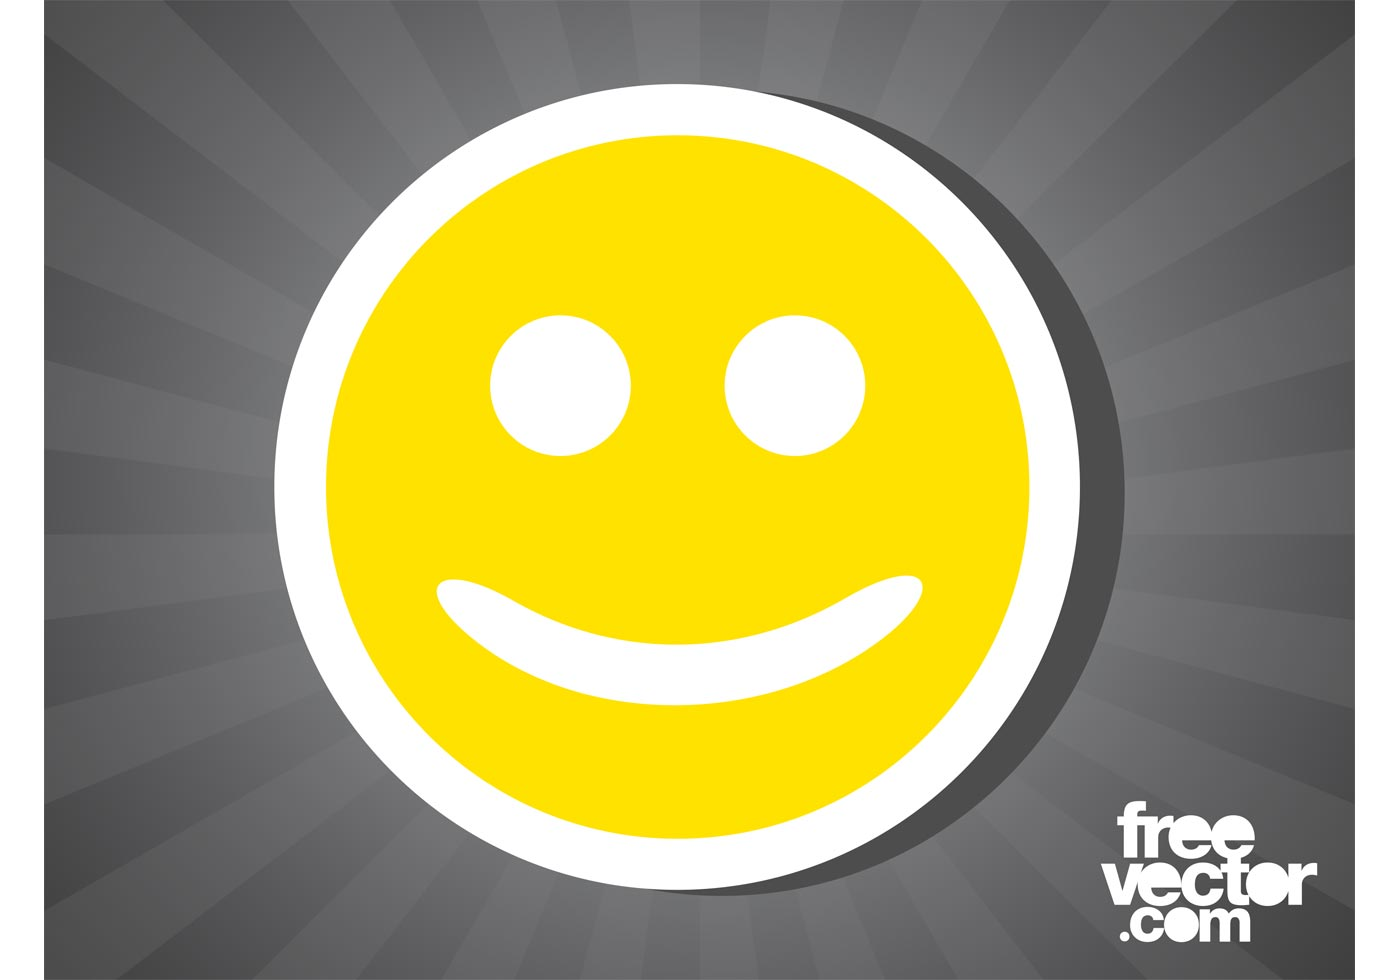 smiley face sticker download free vector art  stock Smiley-Face Icon Vector Smile Face Vector